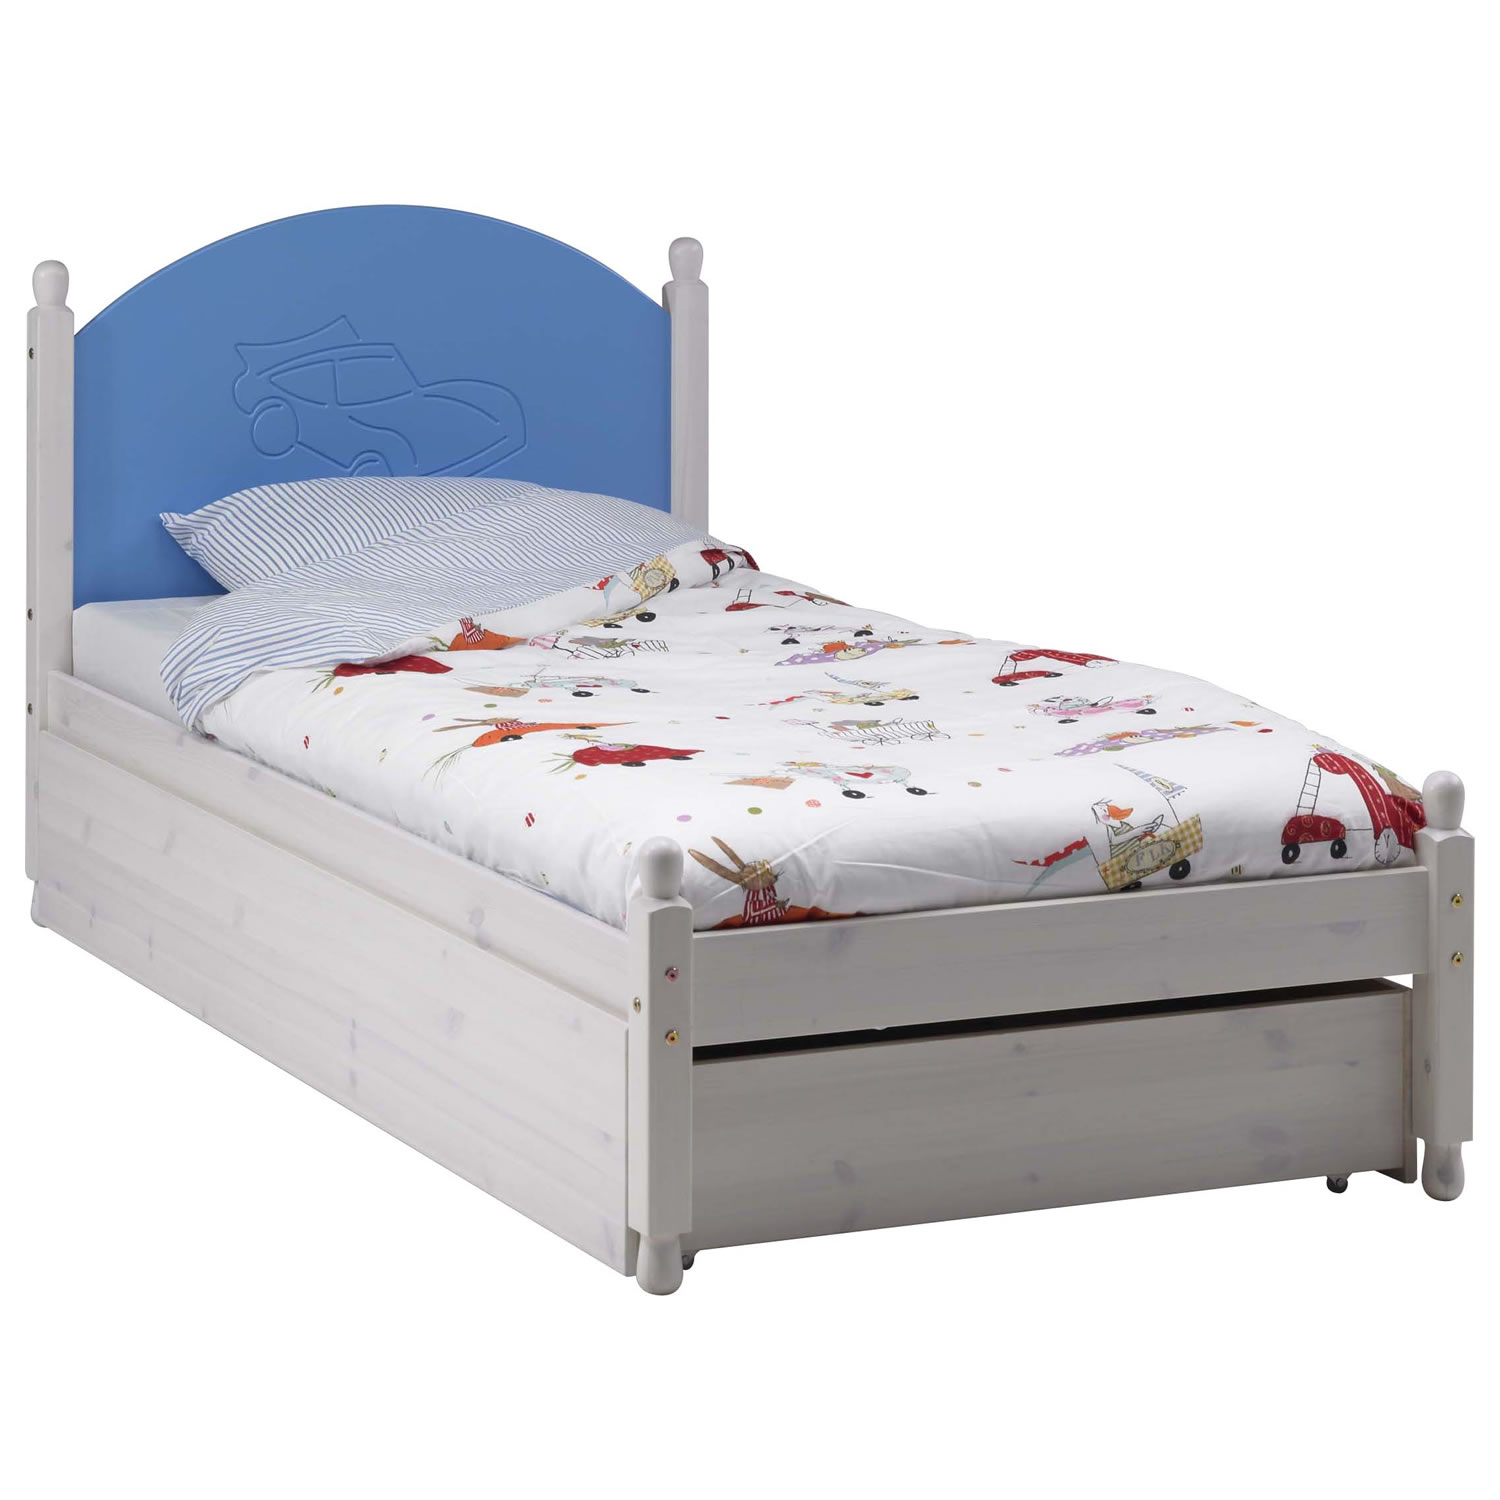 Trundle Bed Frame for Kids